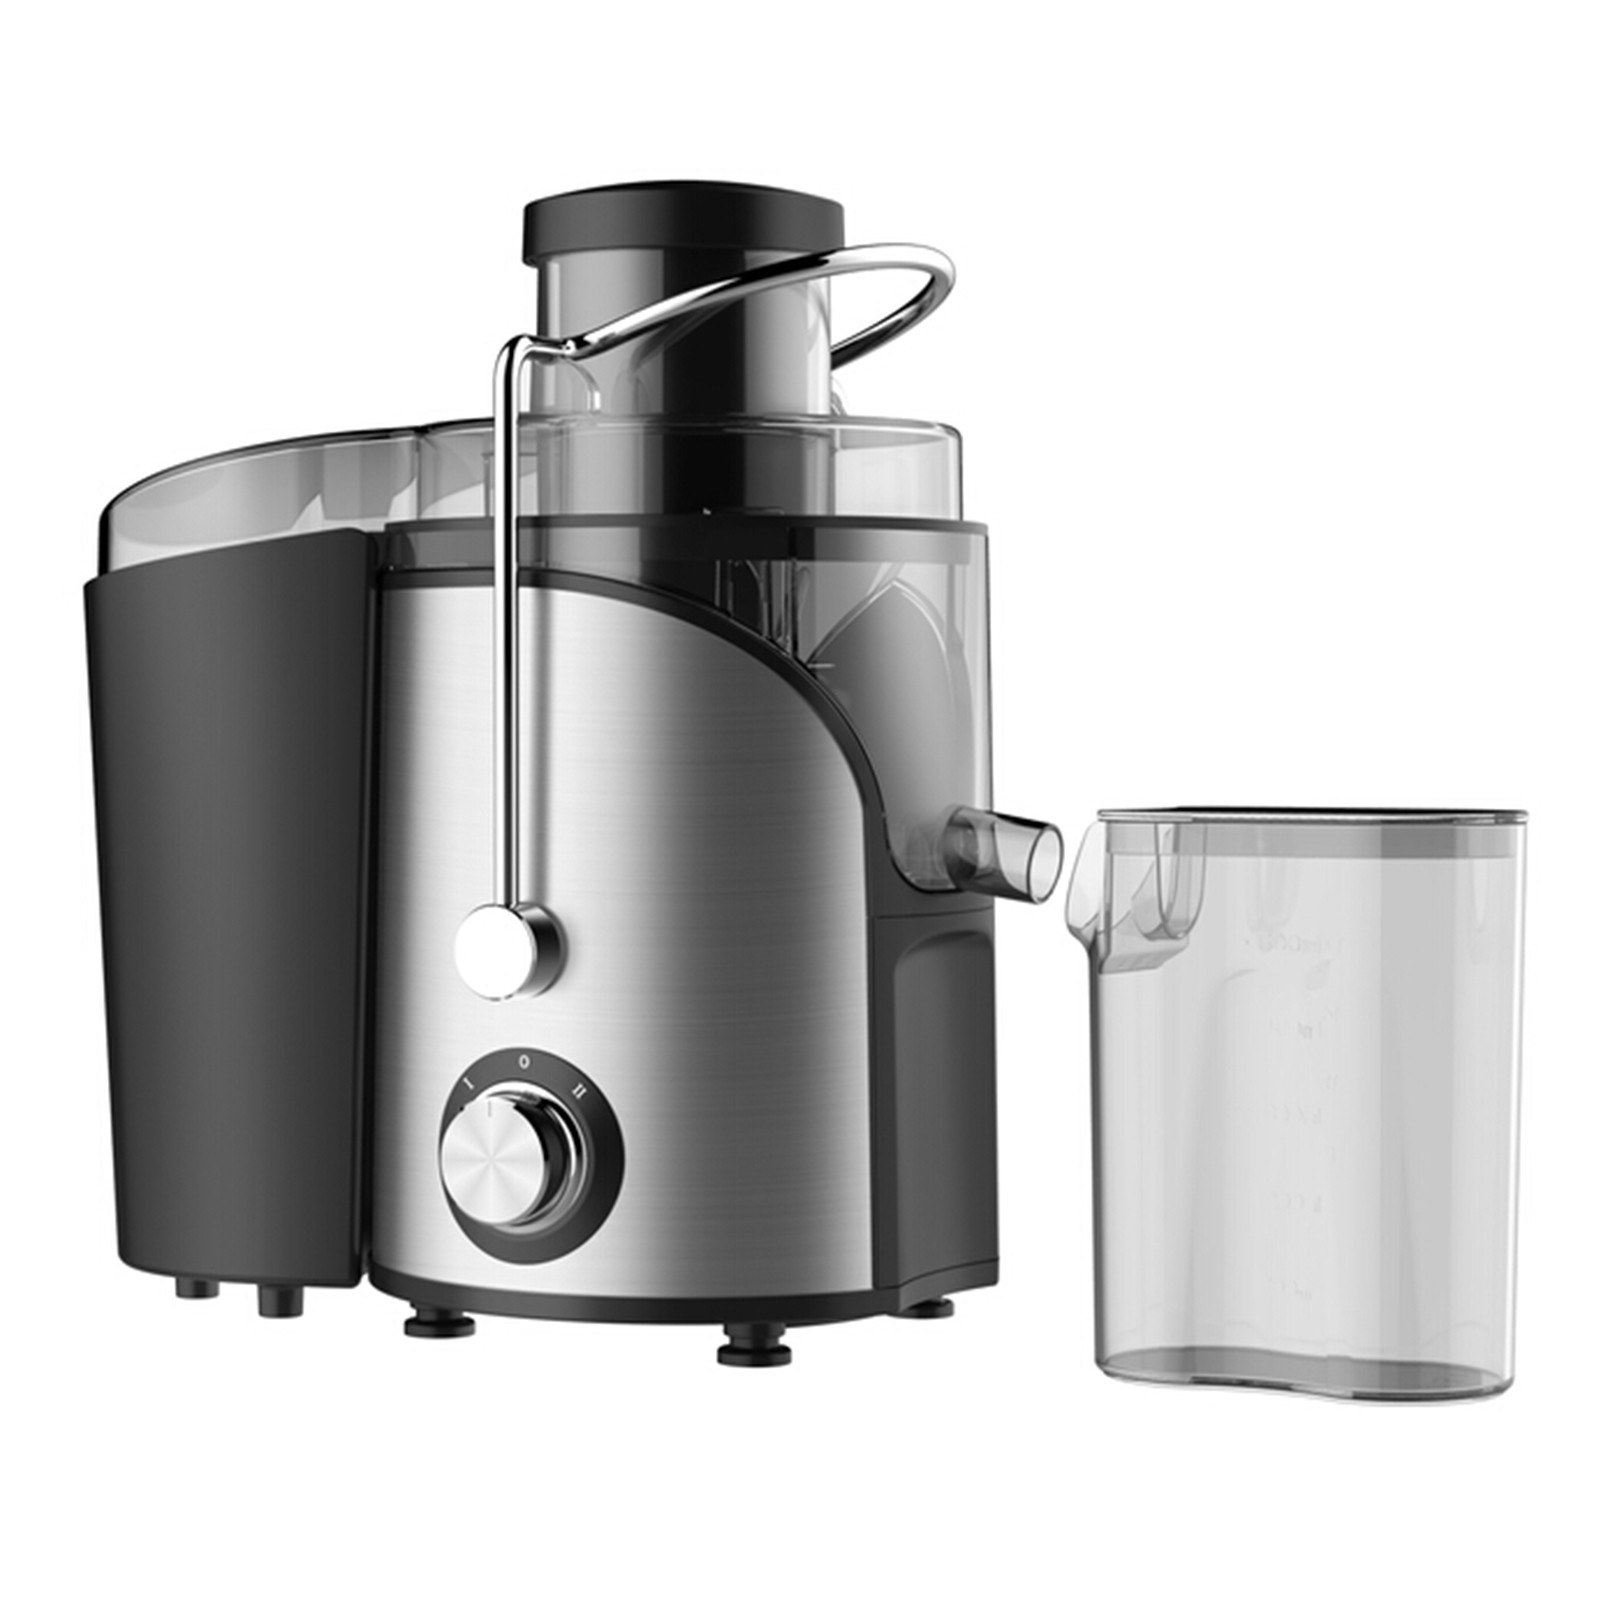 tomtop.com - [US Clearance Sale] 64% OFF Homgeek 600W Extractor Centrifugal Juicers Anti-Shake Design, $27.99 (Inclusive of VAT)